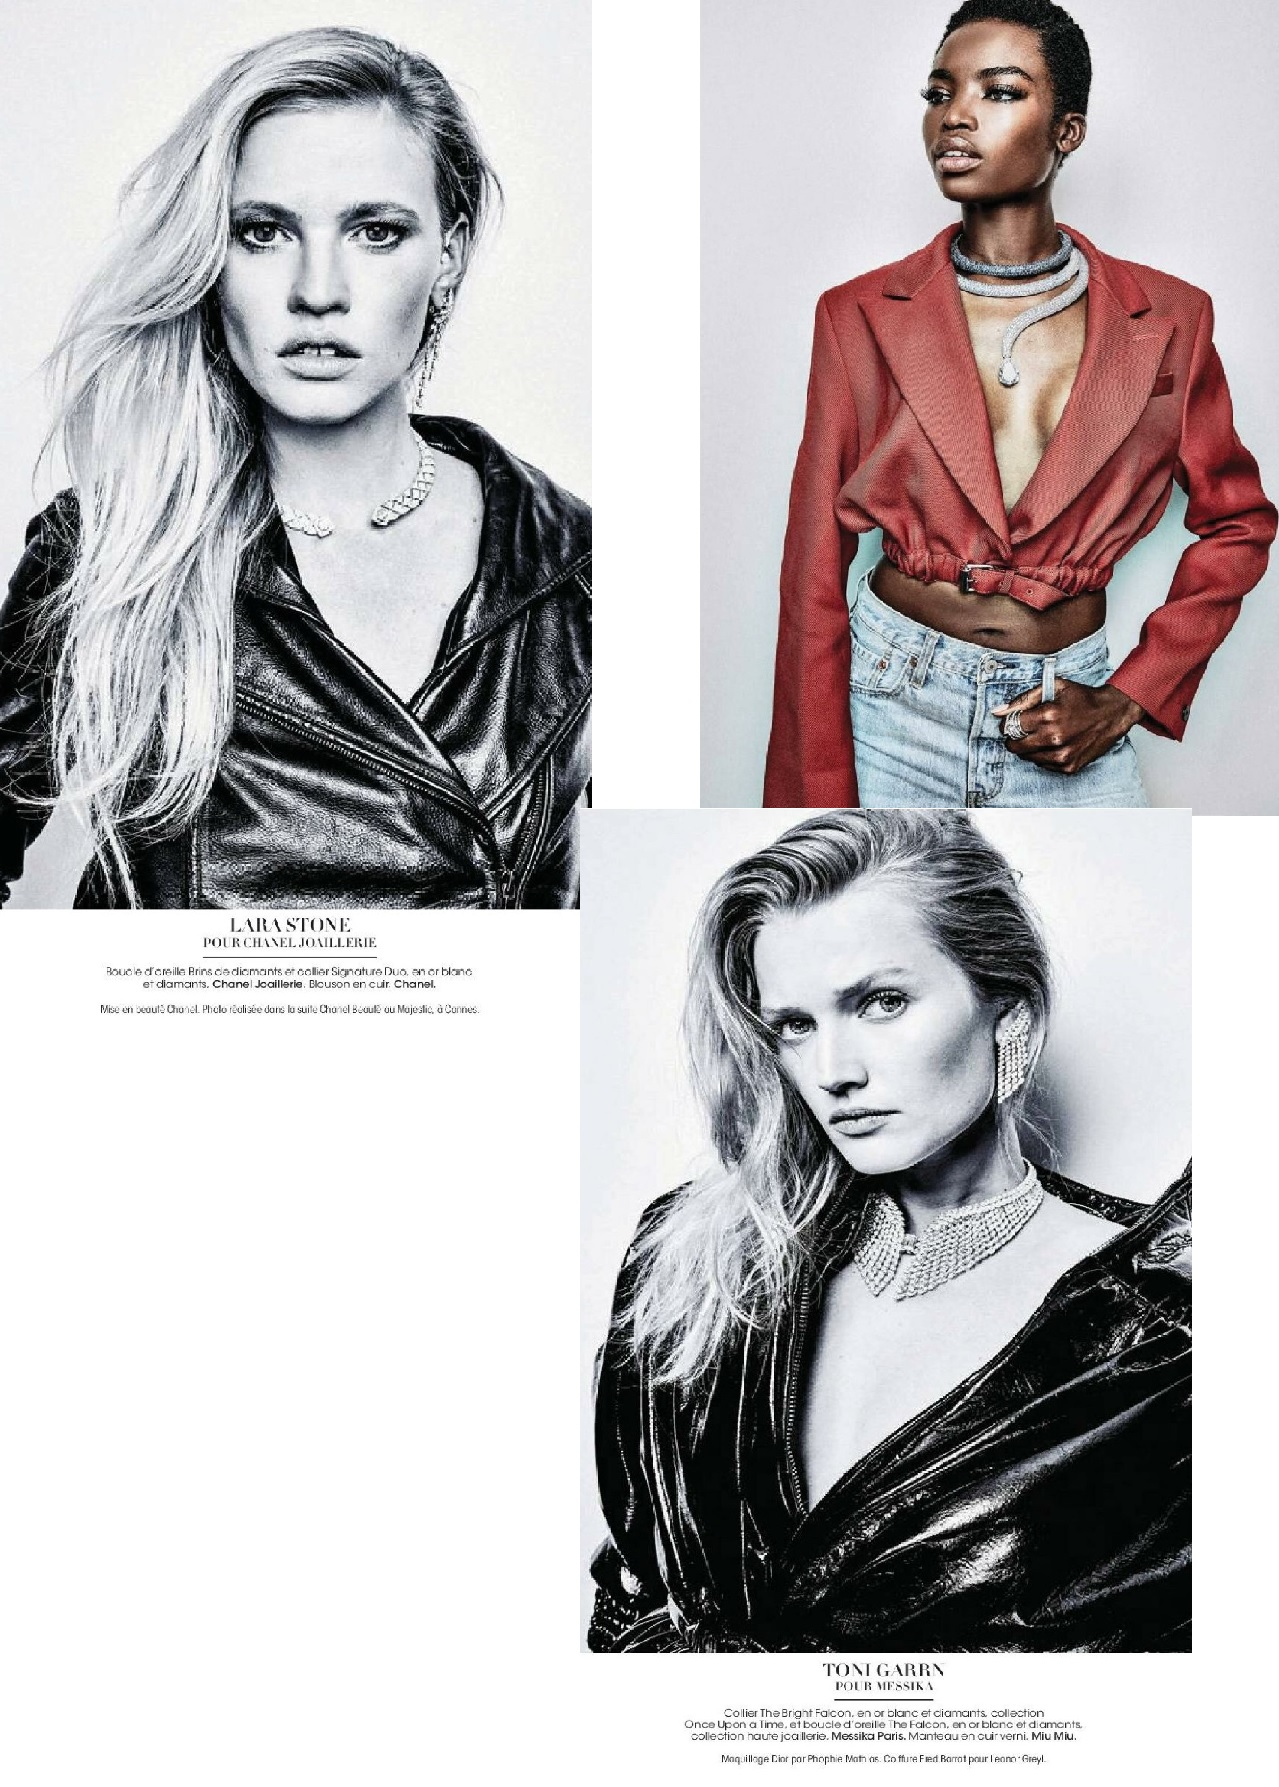 Damon Baker Madame Figaro Dec 21, 2018 collage.jpg